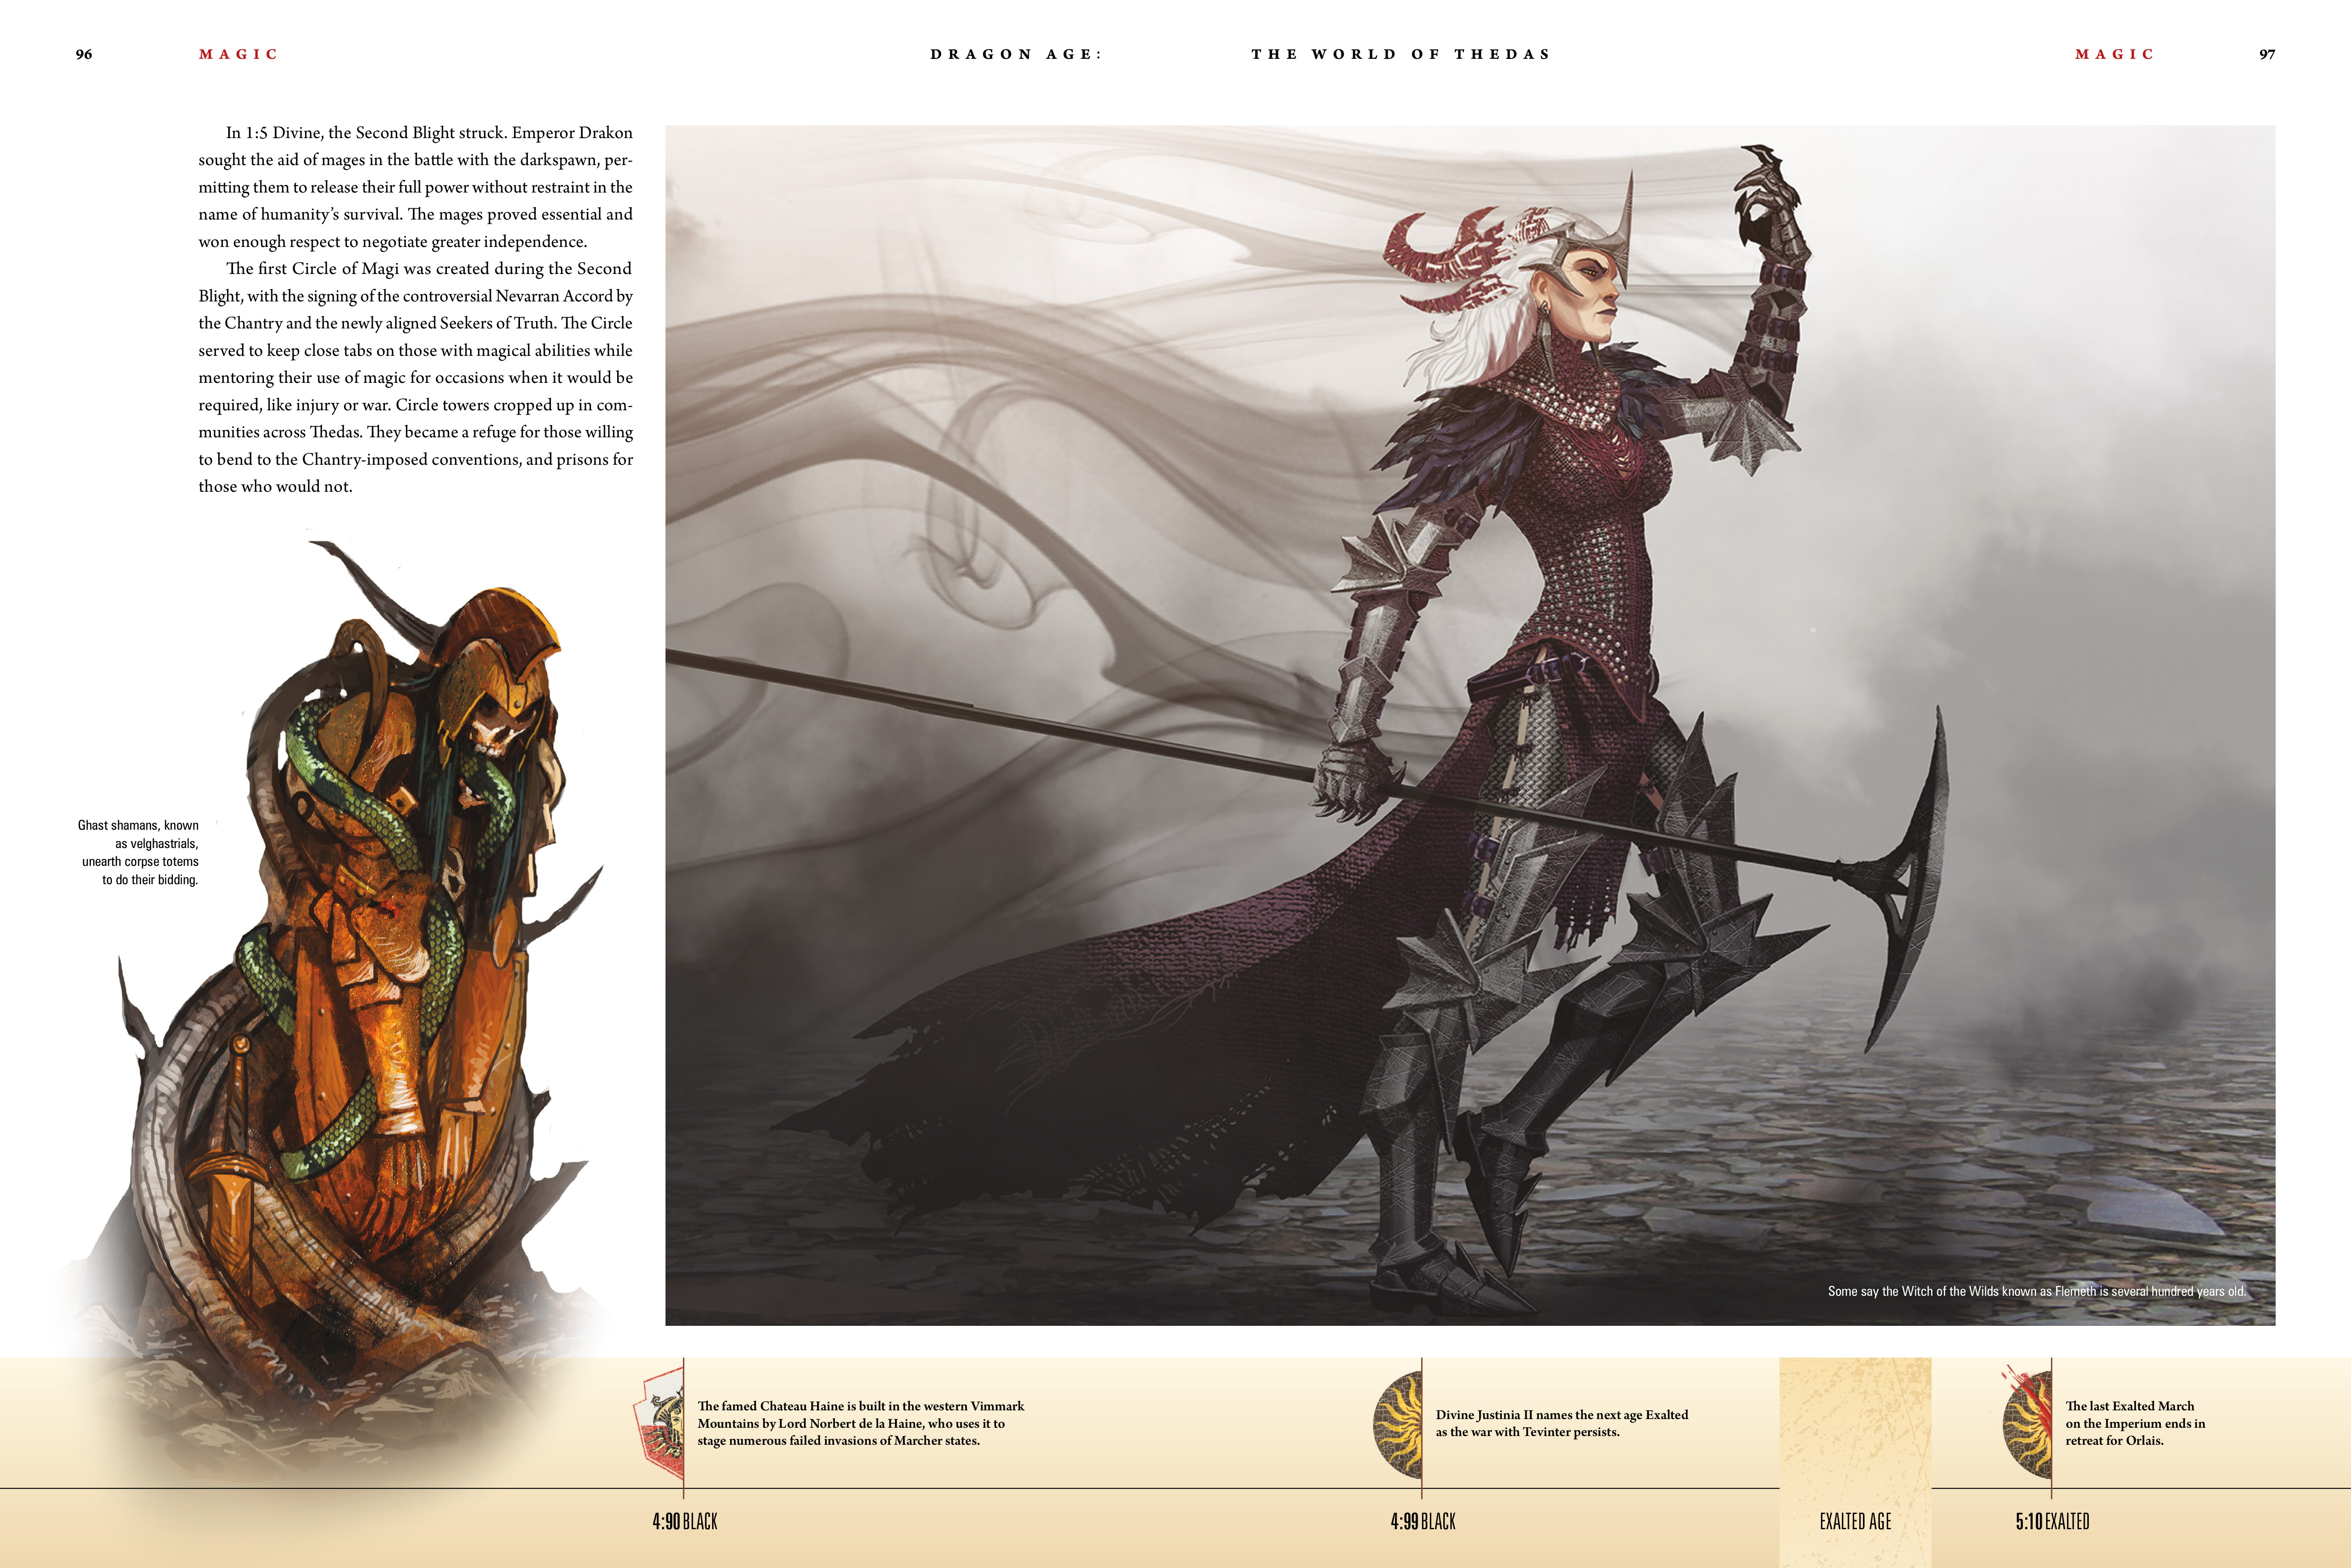 Read online Dragon Age: The World of Thedas comic -  Issue # TPB 1 - 78